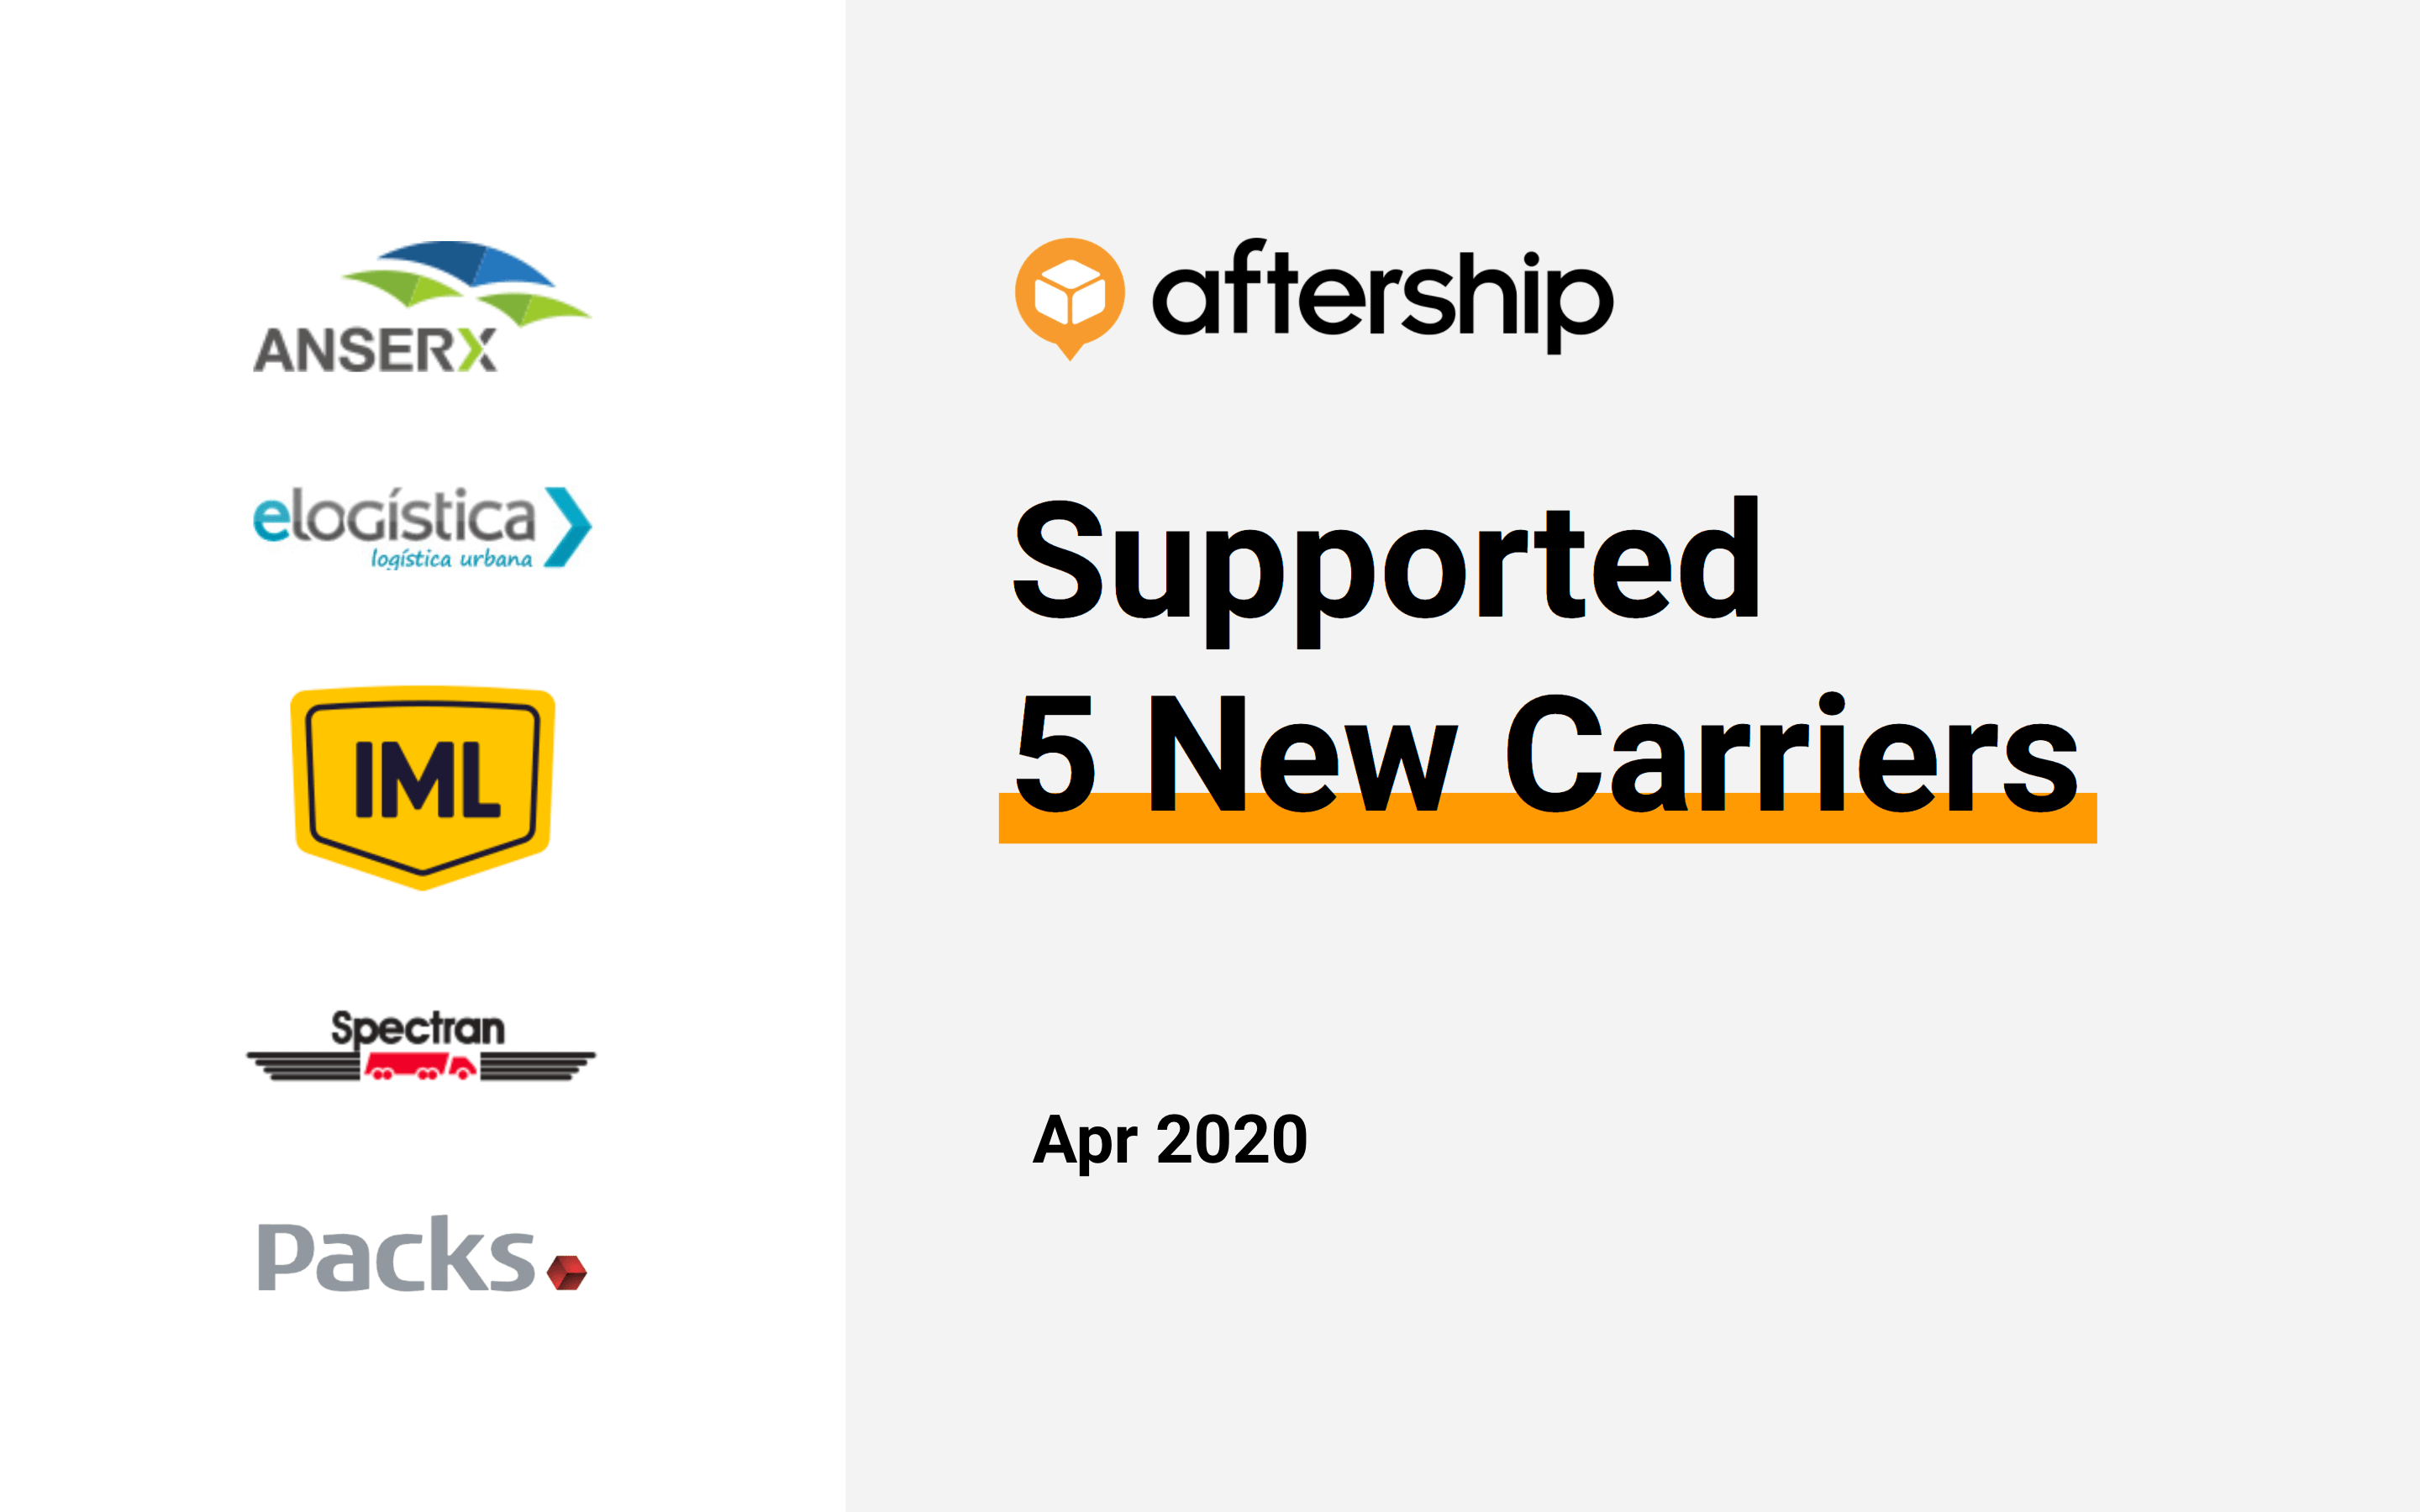 AfterShip added 5 new carriers this week (13 Apr 2020 to 17 Apr 2020)